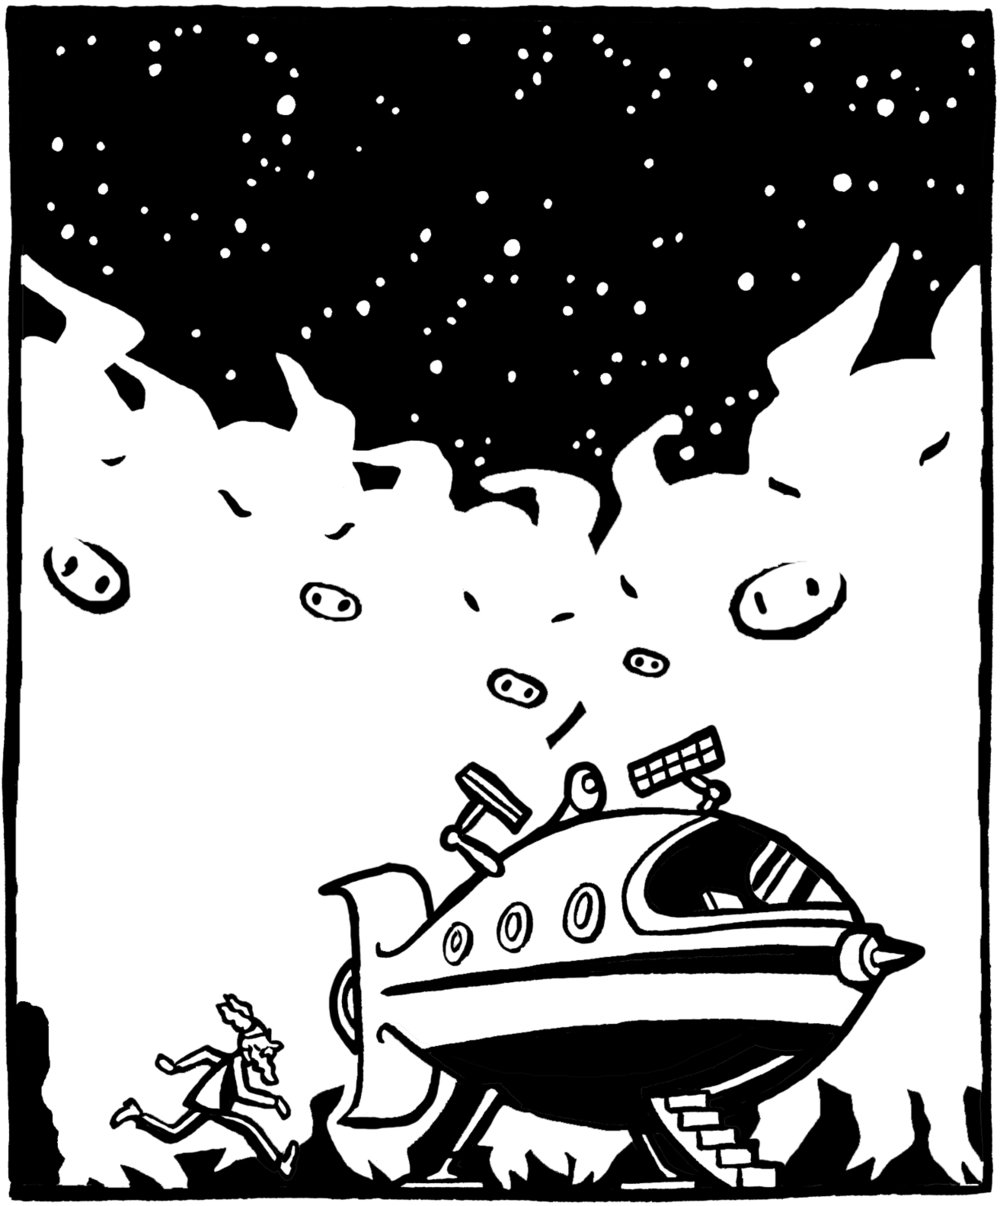 Panel from Nimbus and the Amazing Spectacles..